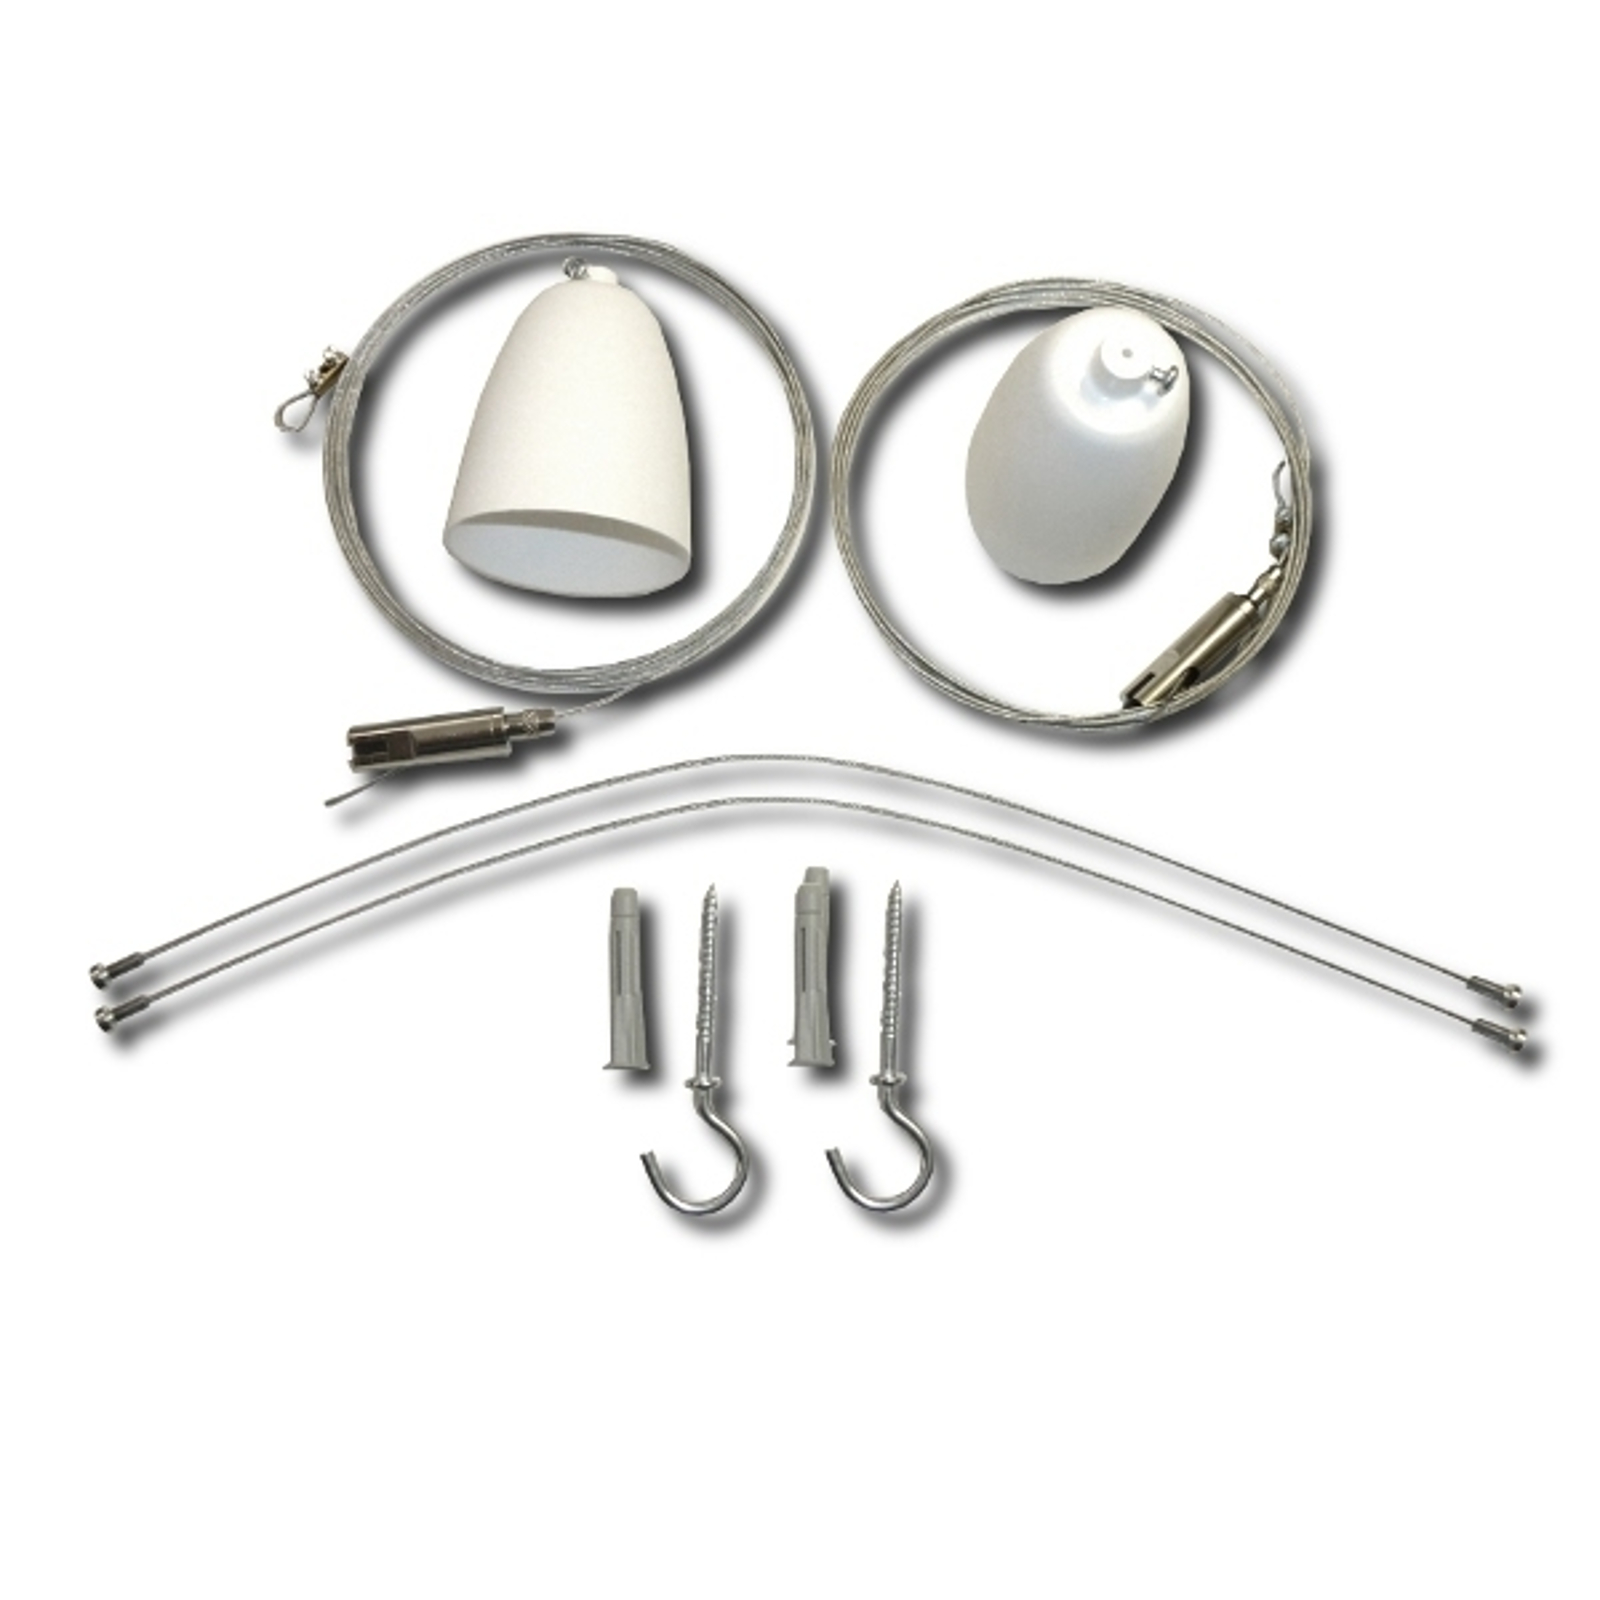 Cable suspension two-point set_3002043_1